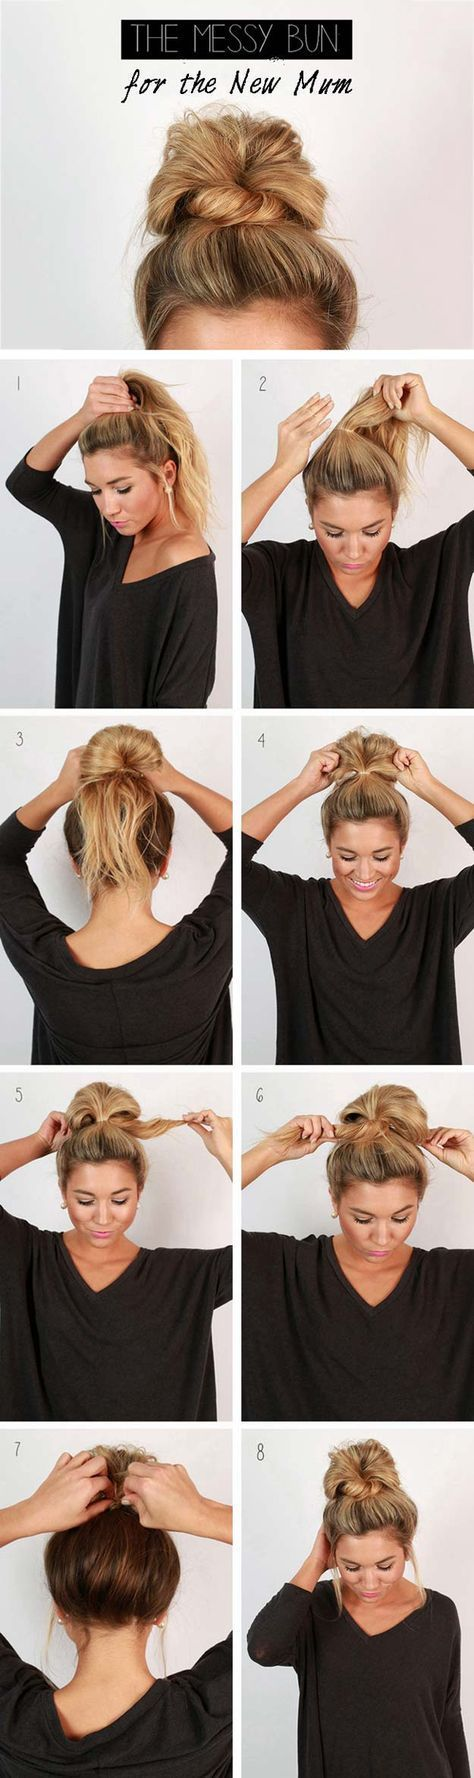 best ideas about hair styles on pinterest updo dark ombre and